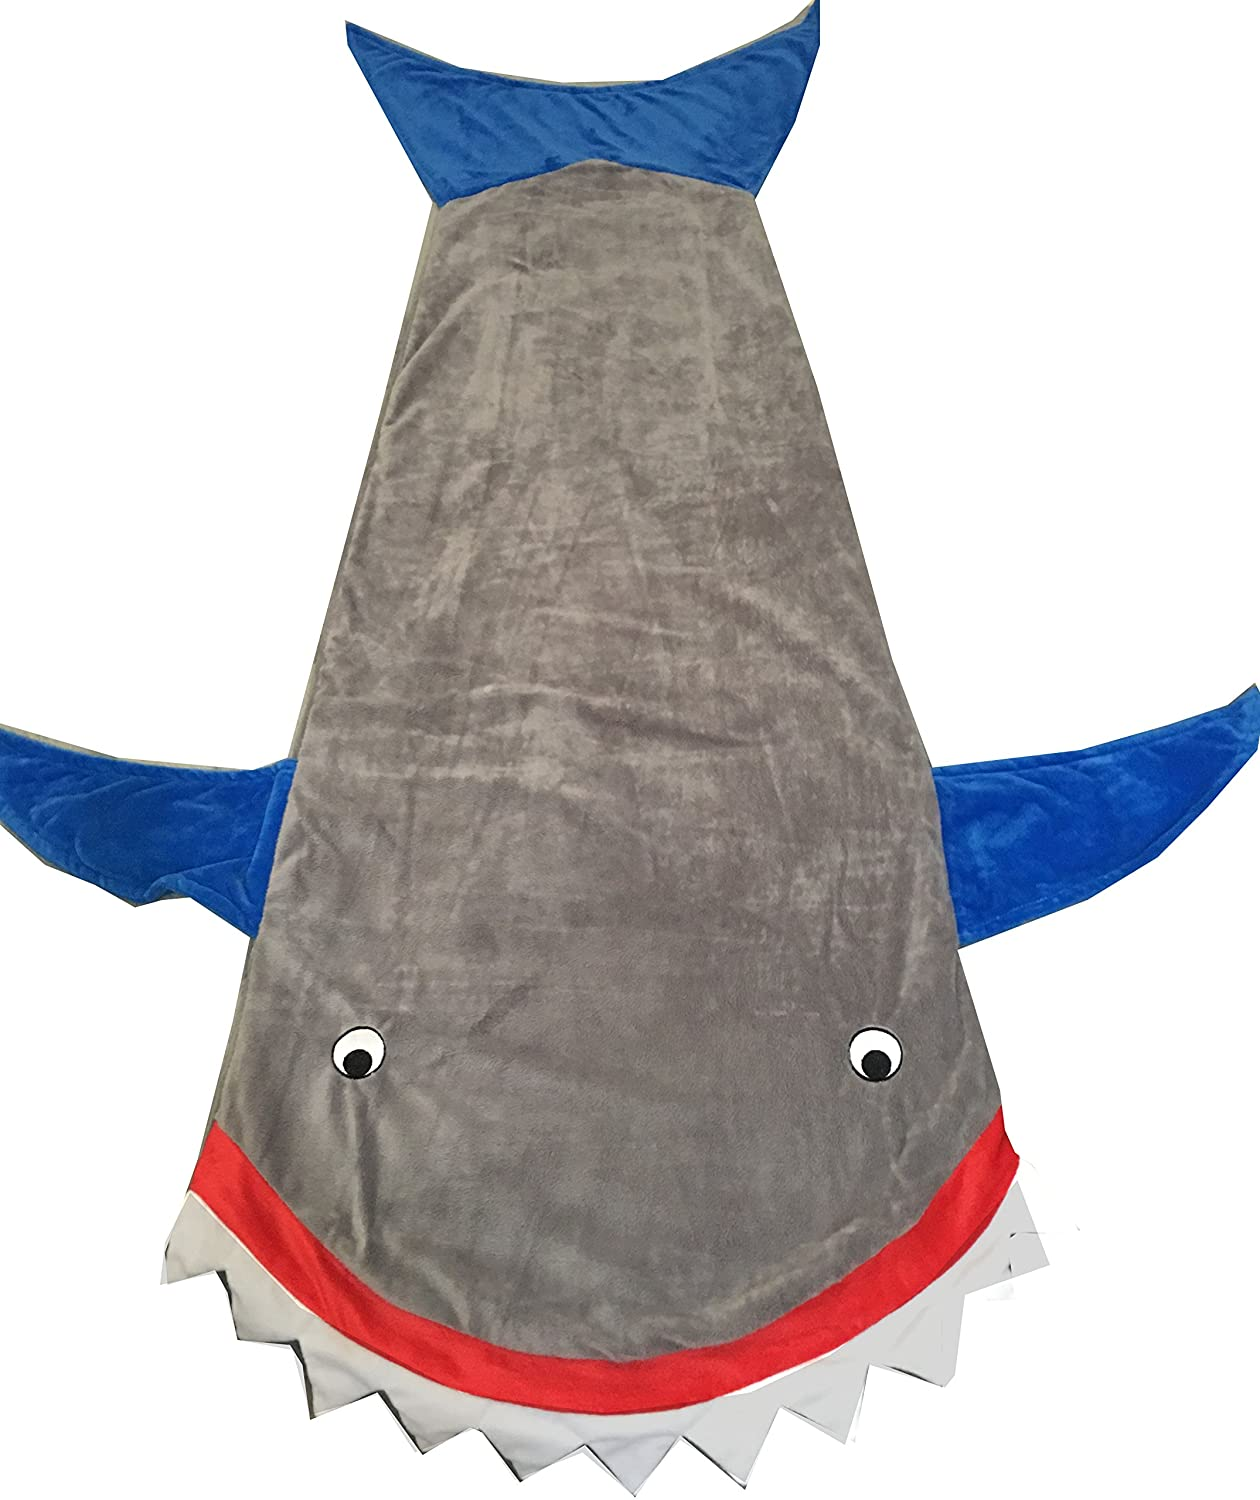 GSJammies Shark Blanket Warm Cozy Sleeping Bag Gift For Kids (Gray) Daomin